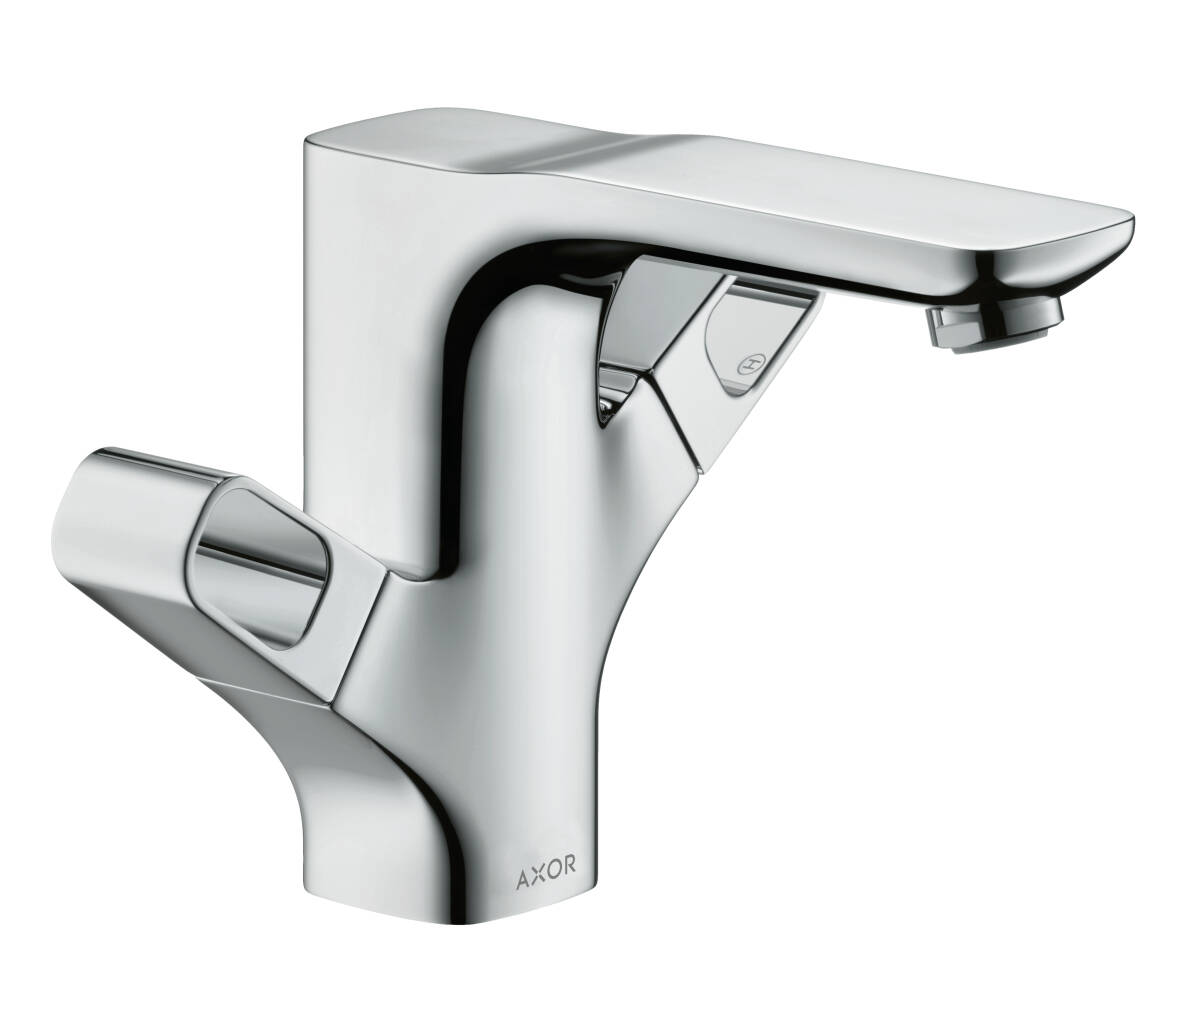 2-handle basin mixer 120 with pop-up waste set, Chrome, 11024000